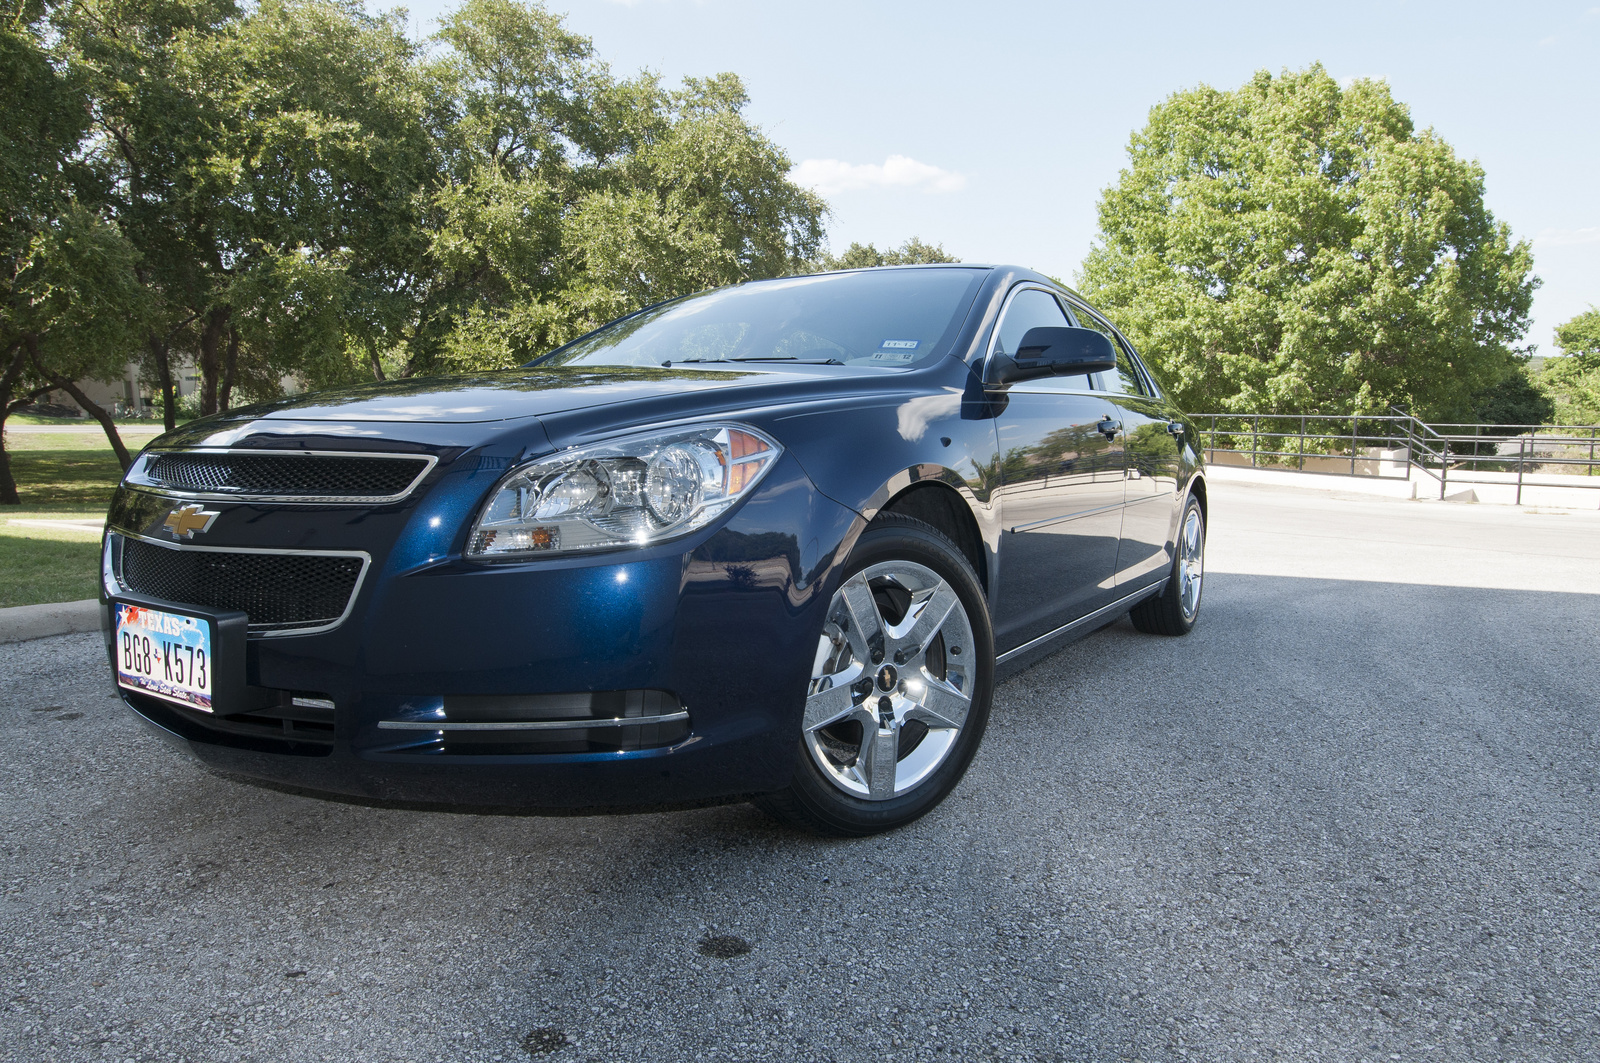 2010 chevrolet malibu pictures cargurus. Cars Review. Best American Auto & Cars Review